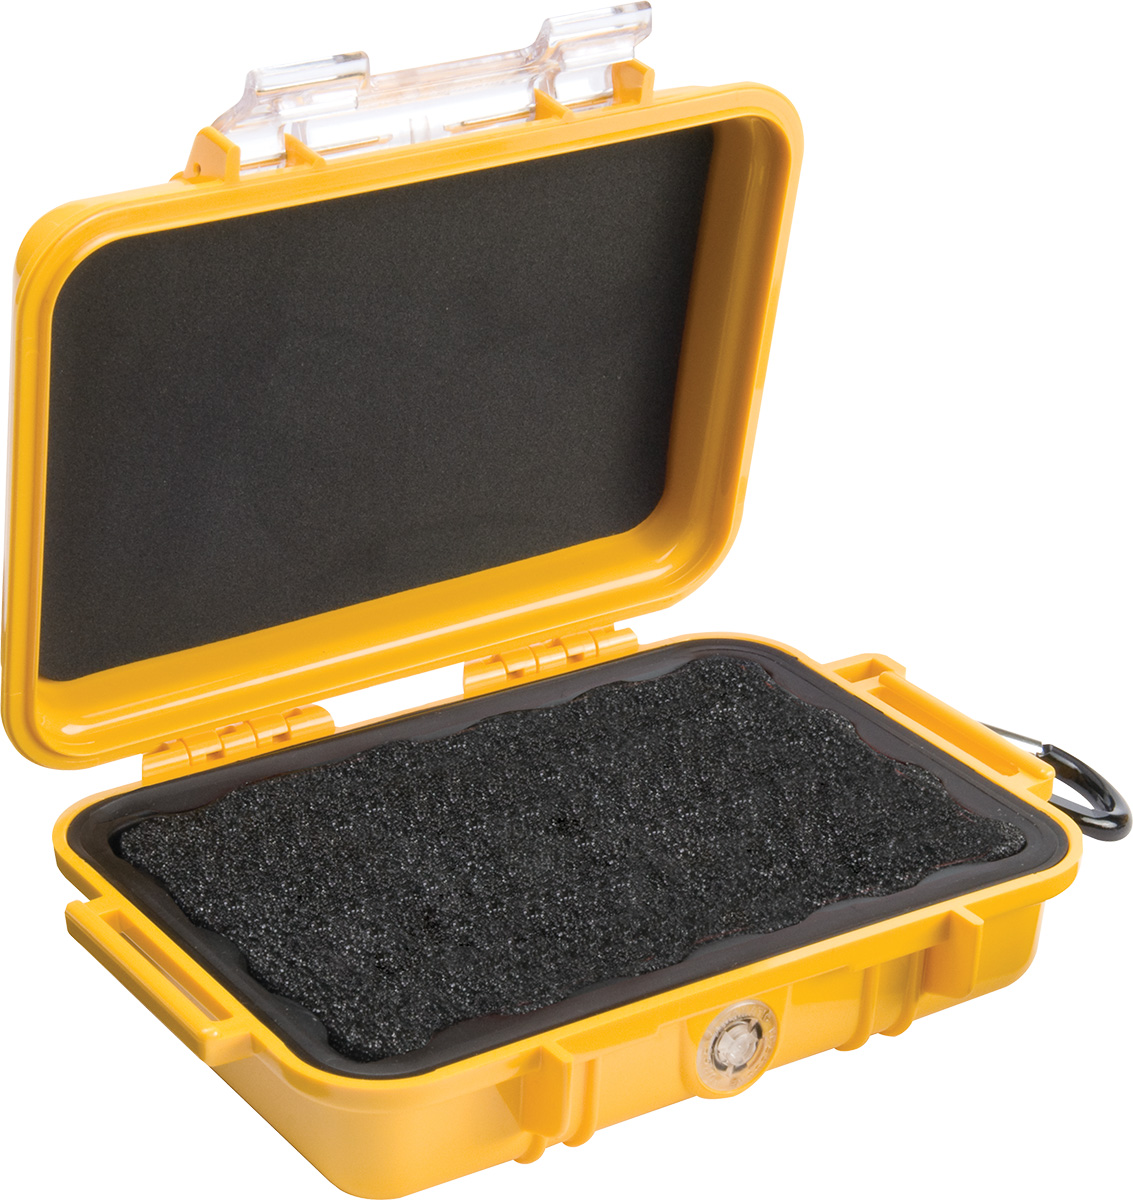 pelican 1020 watertight micro case yellow